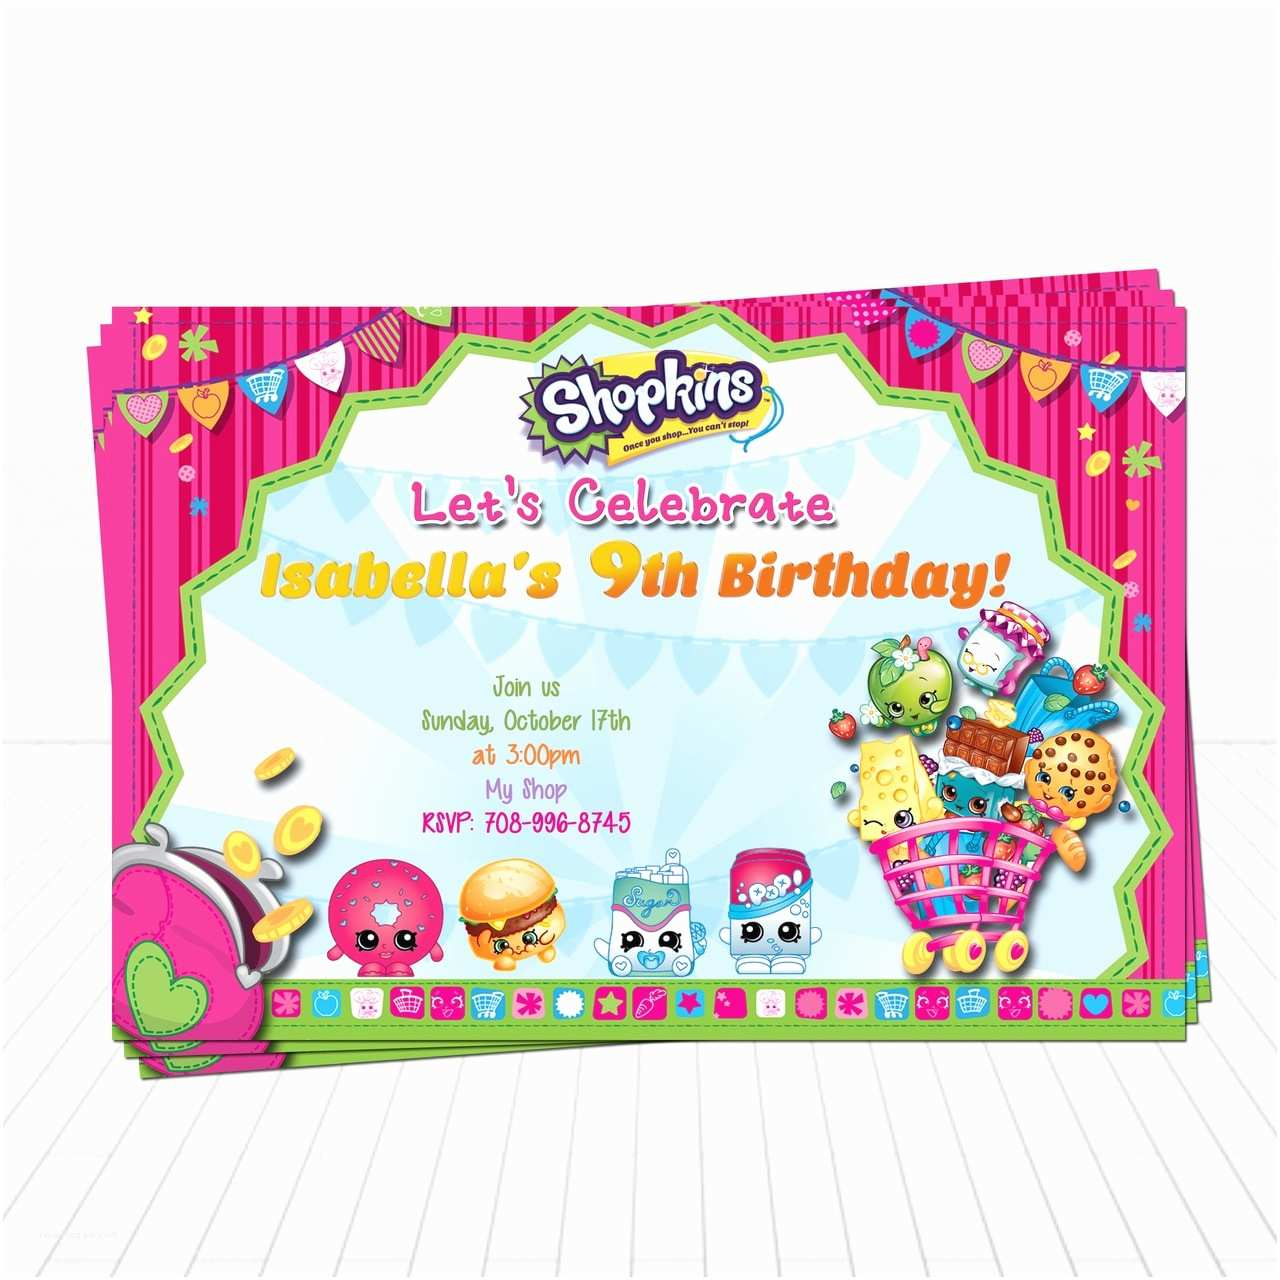 Shopkins Birthday Party Invitations Shopkins Birthday Invitation Shopkins Supplies